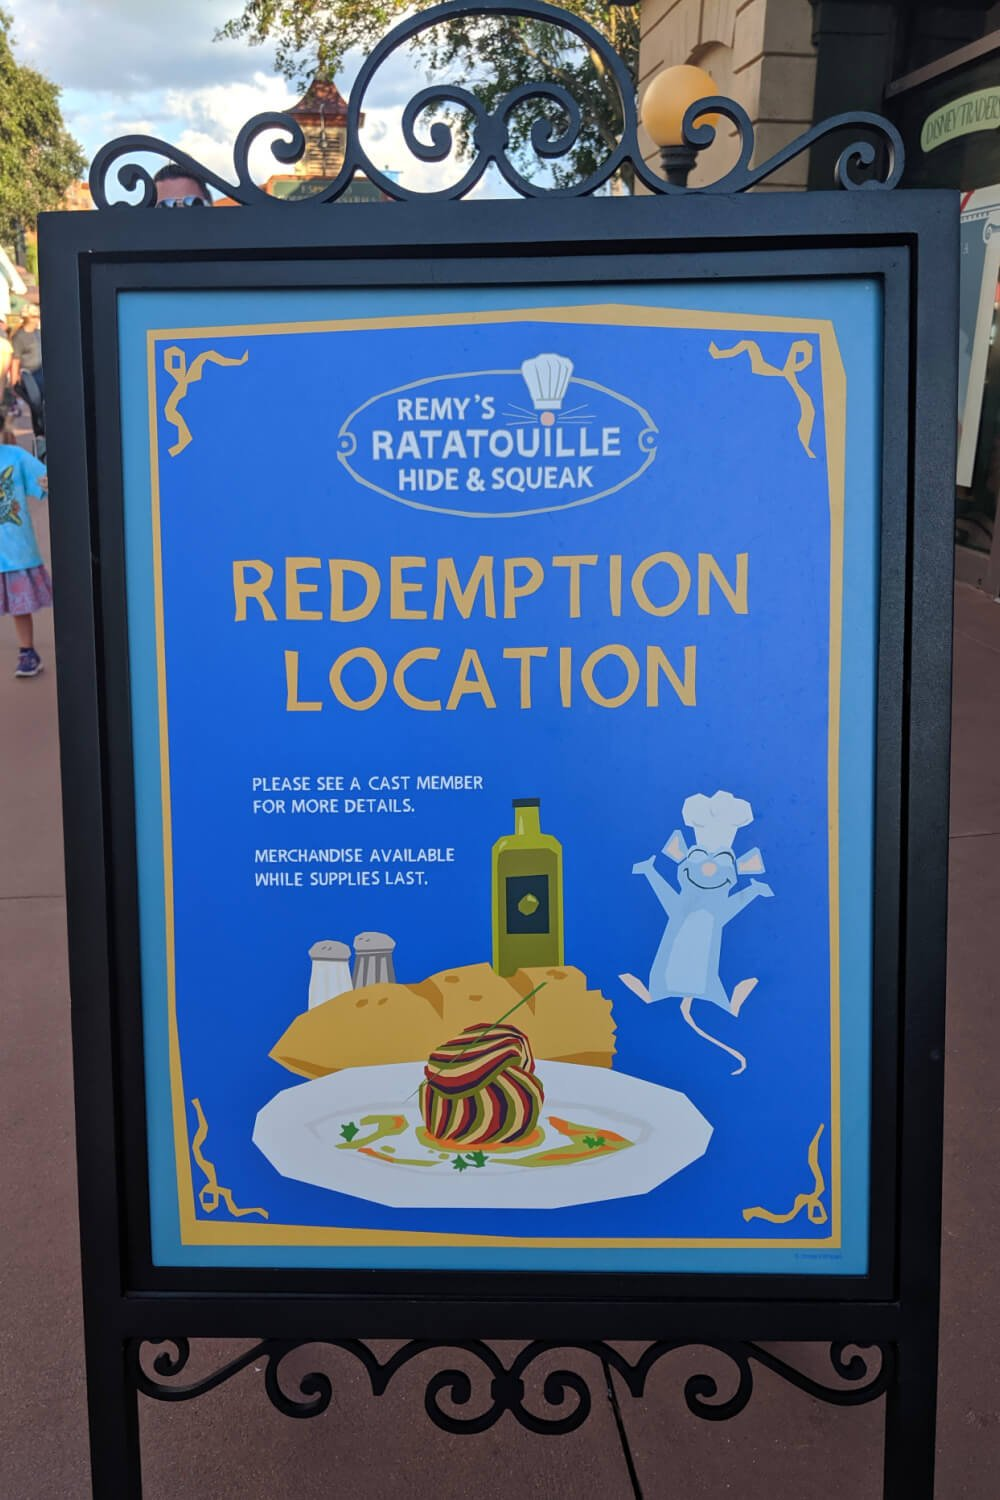 Remy's Ratatouille Hide and Squeak at the Epcot Food and Wine Festival